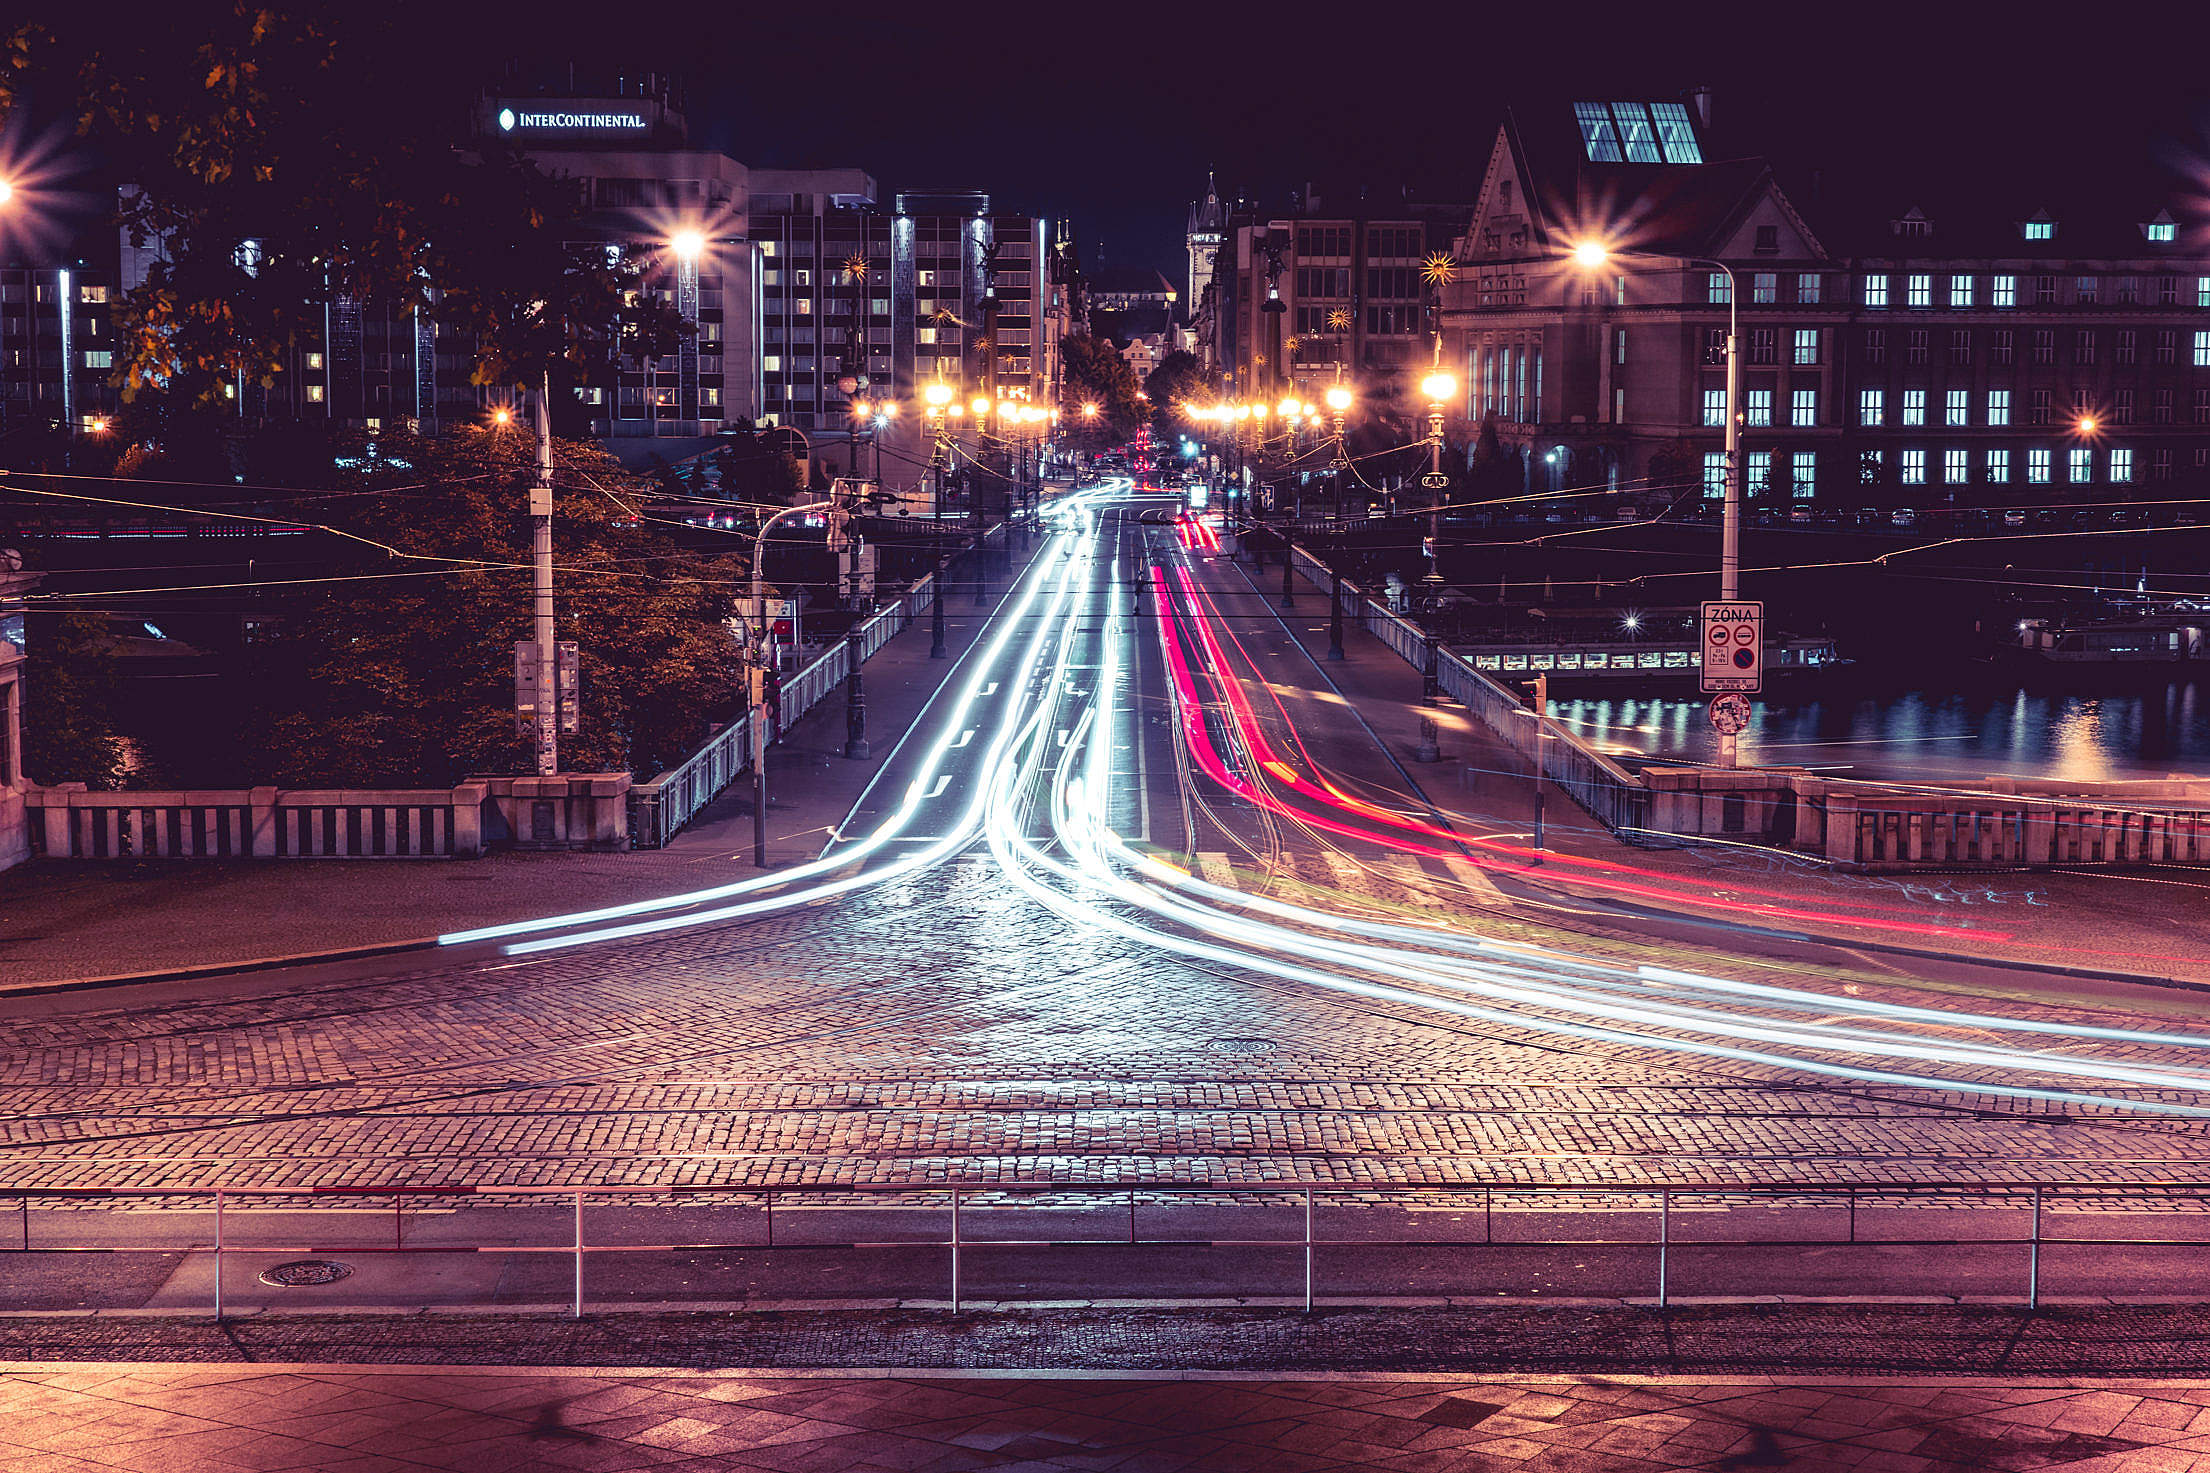 Night Crossroad Traffic in Prague Long Exposure Free Stock Photo